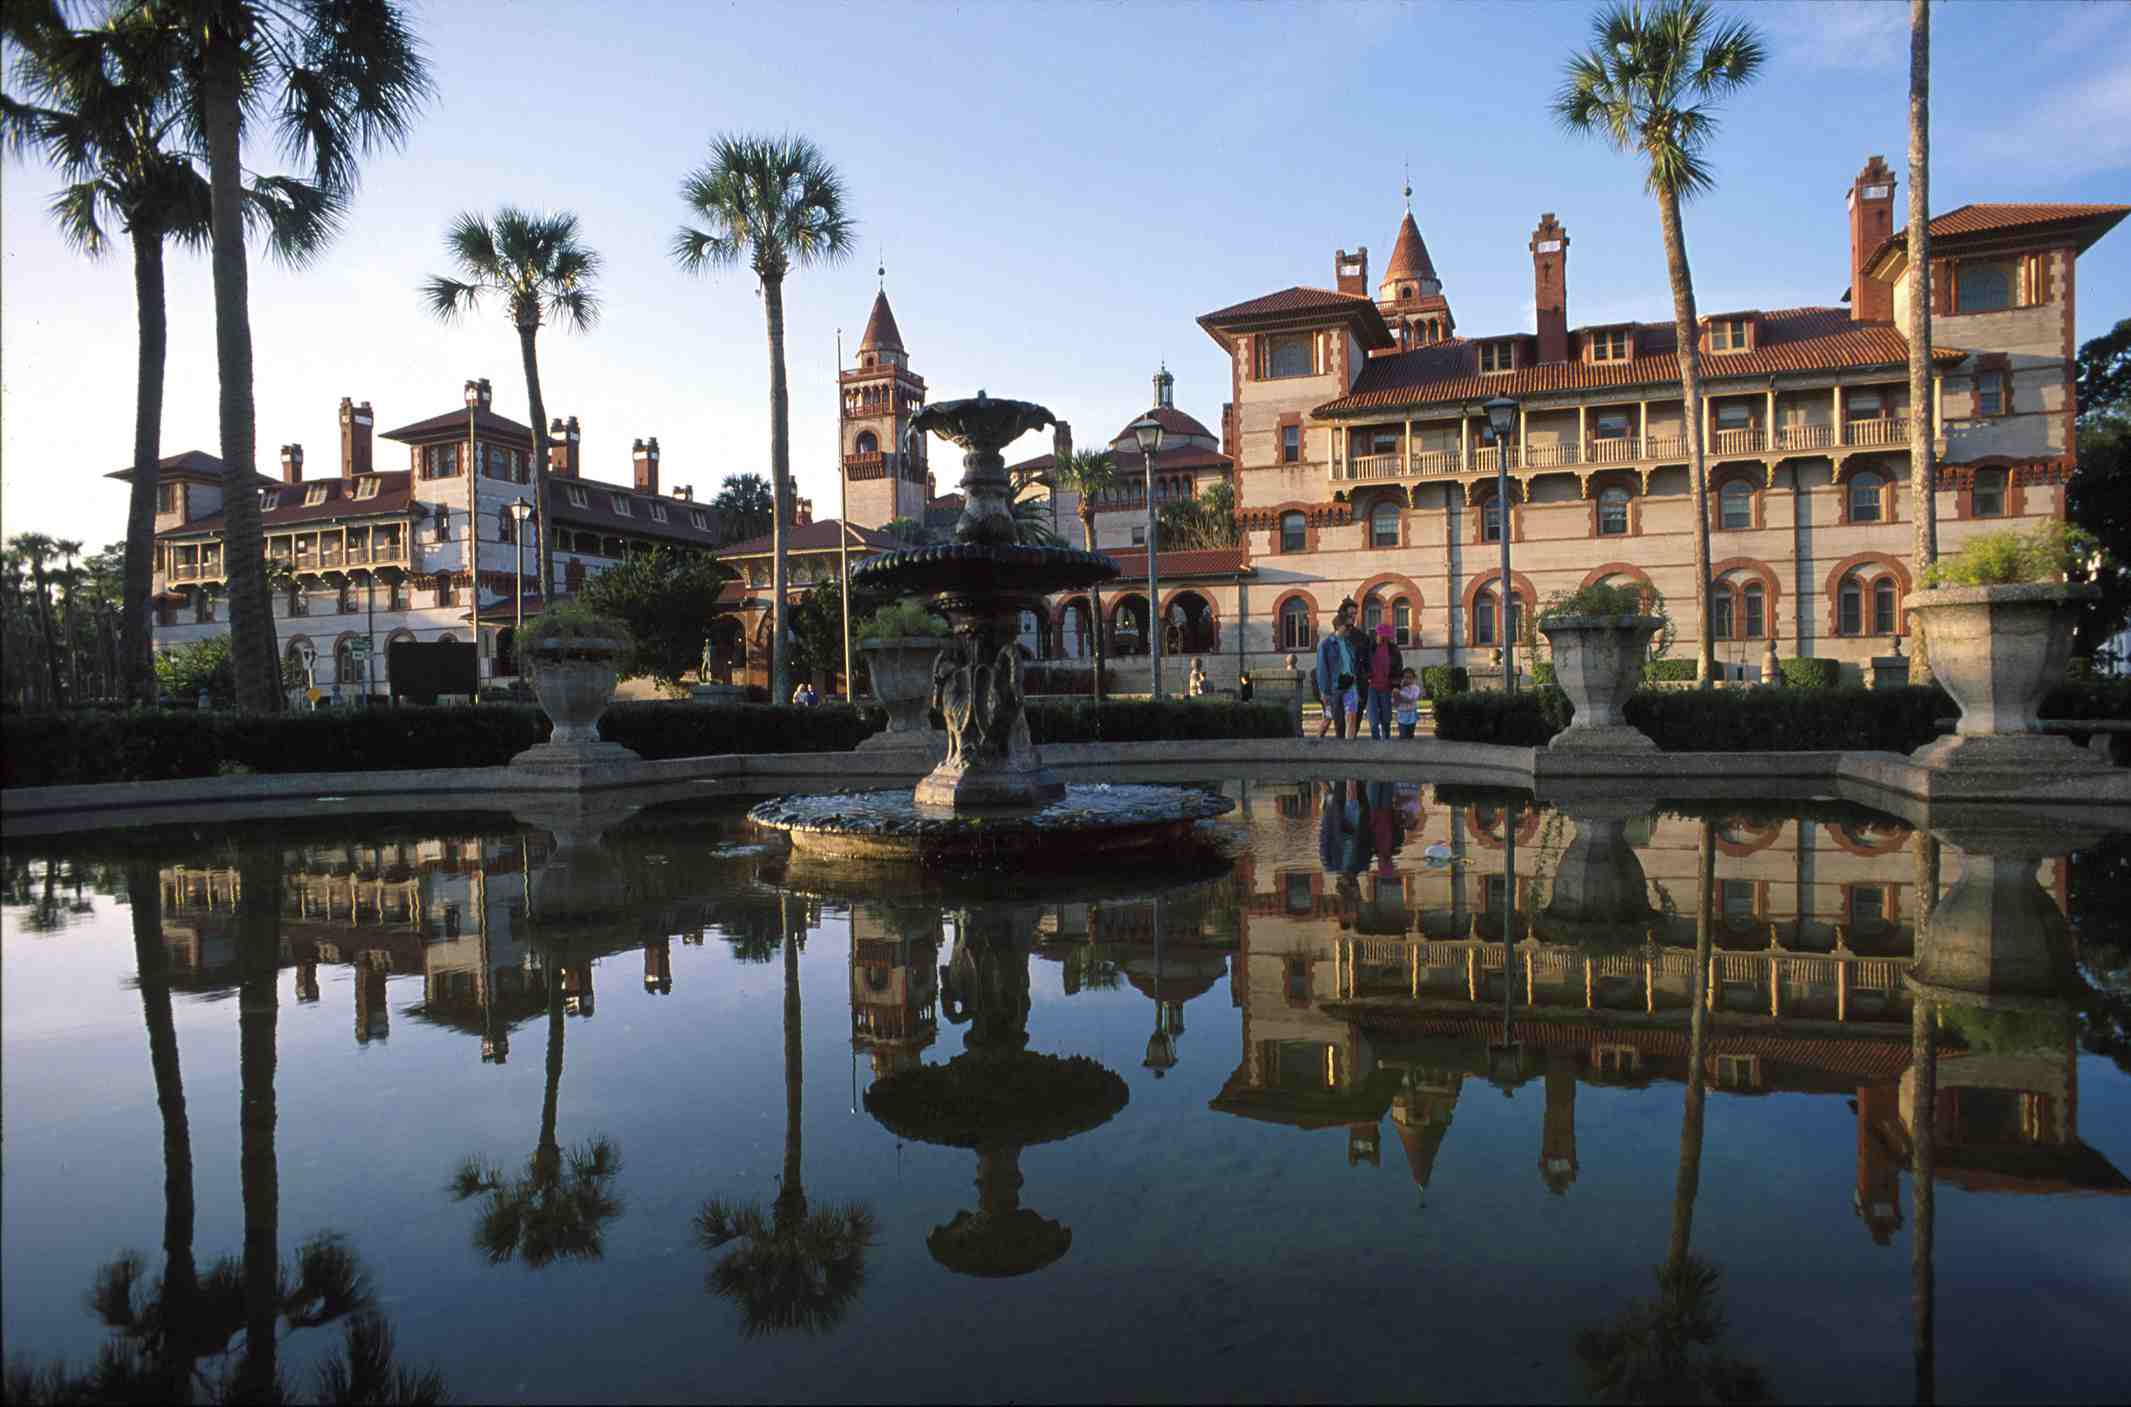 Reflection at the fountain in front of Flagler College